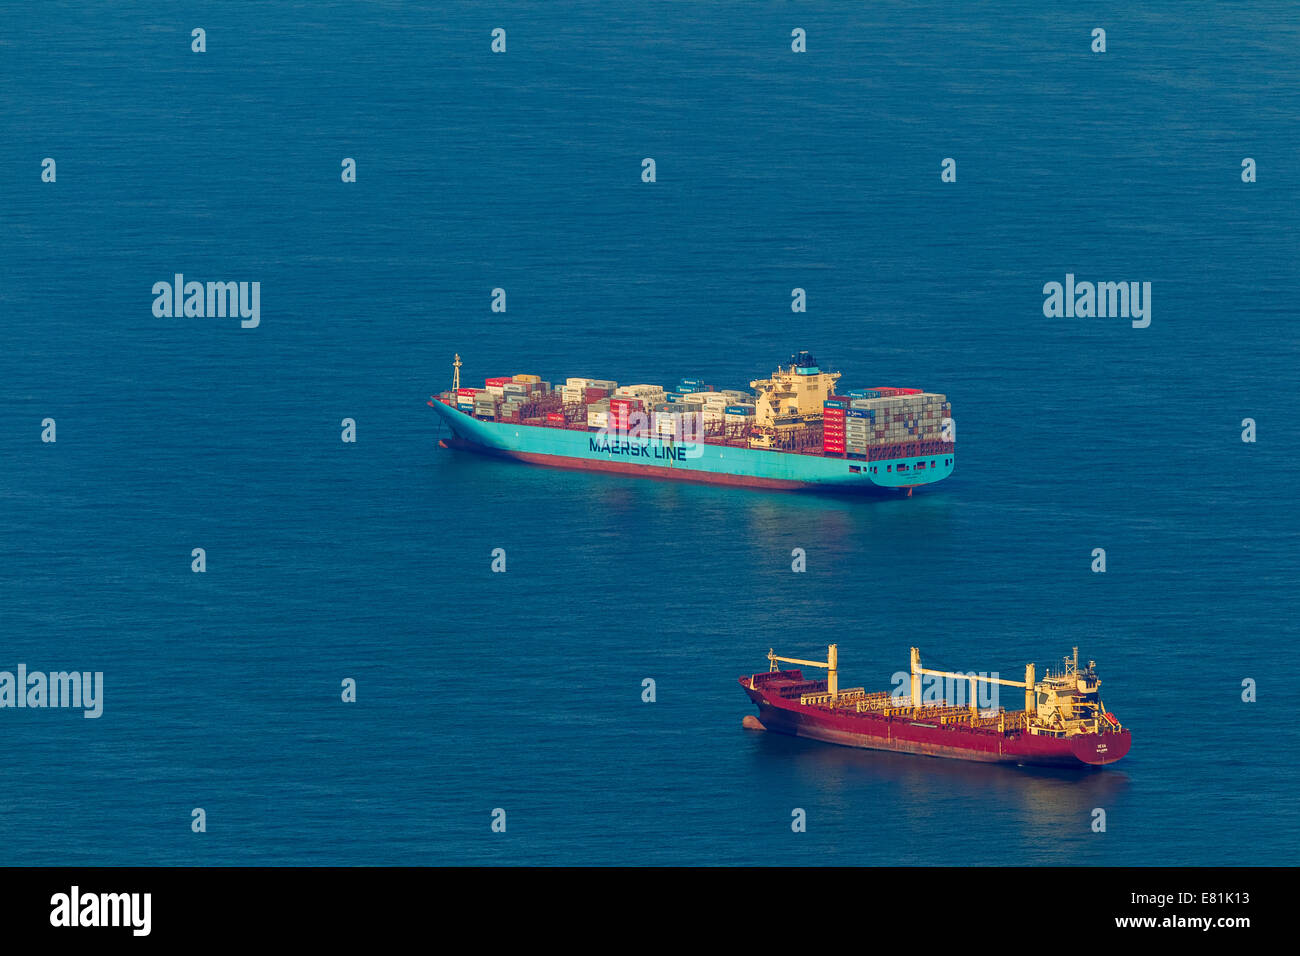 Aerial view, cargo ships at anchor, shipping line, shipping route, ships at sea, coastal waters, off Wangerooge, - Stock Image